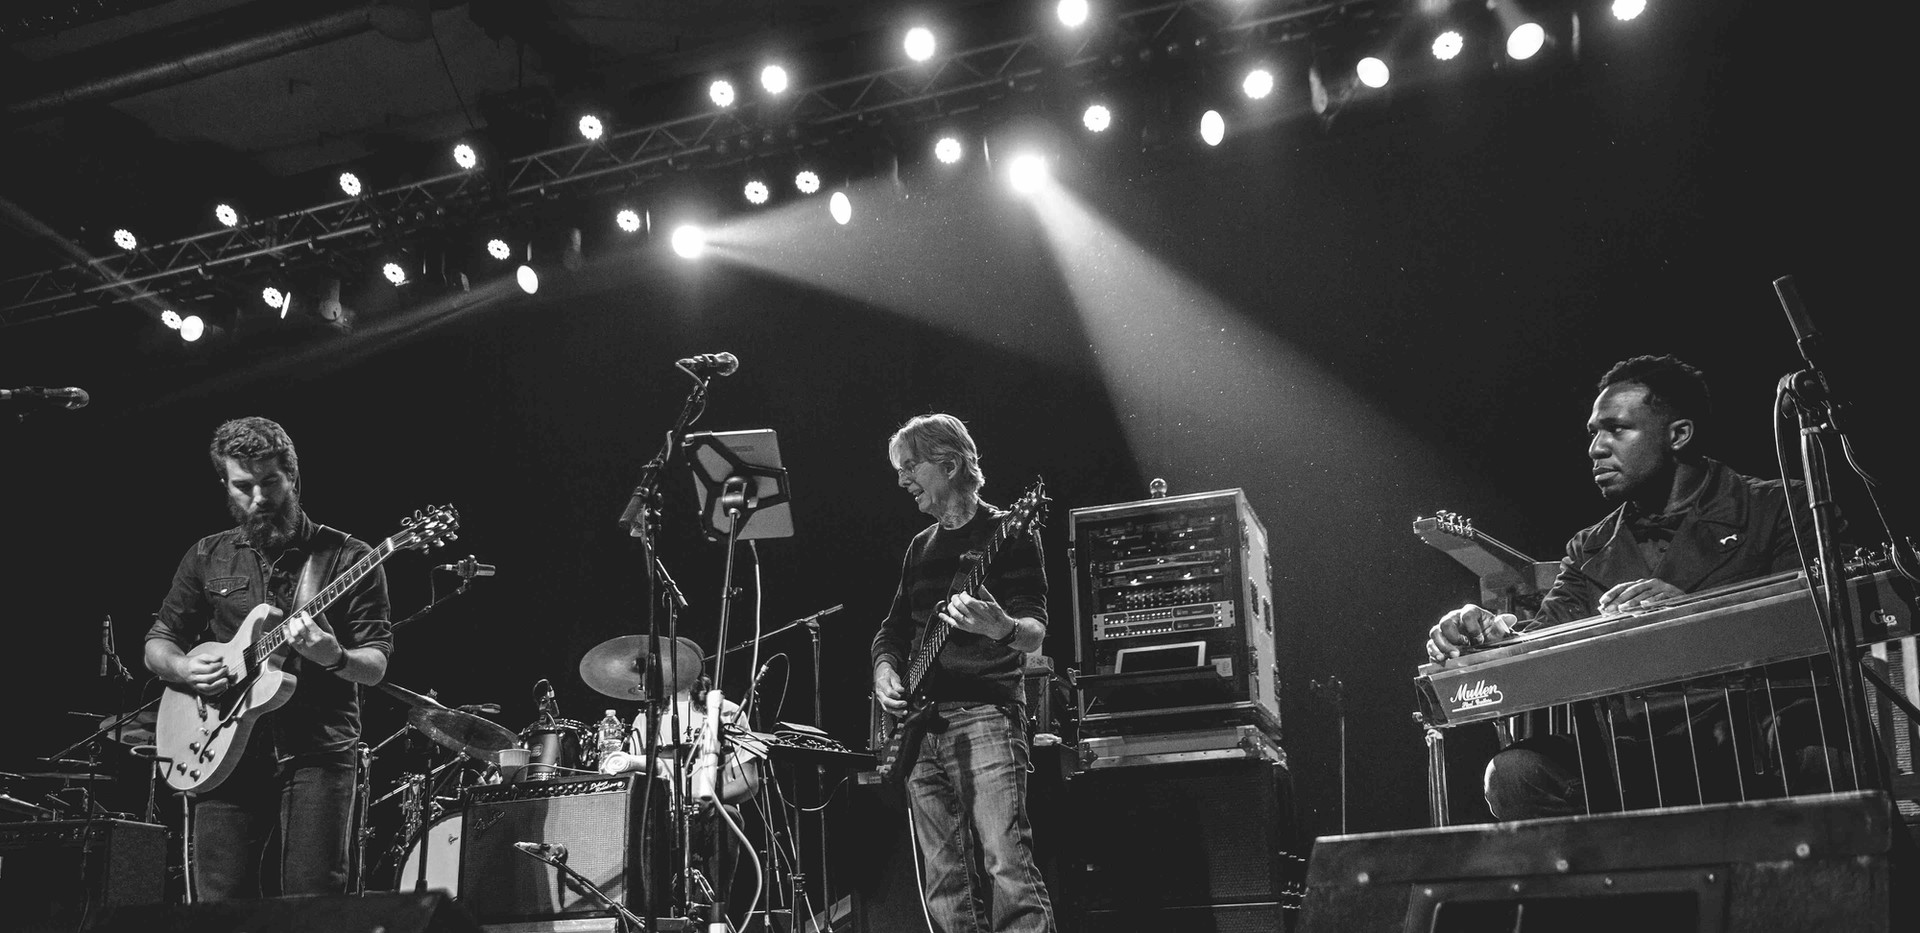 Phil Lesh & The Terrapin Family Band